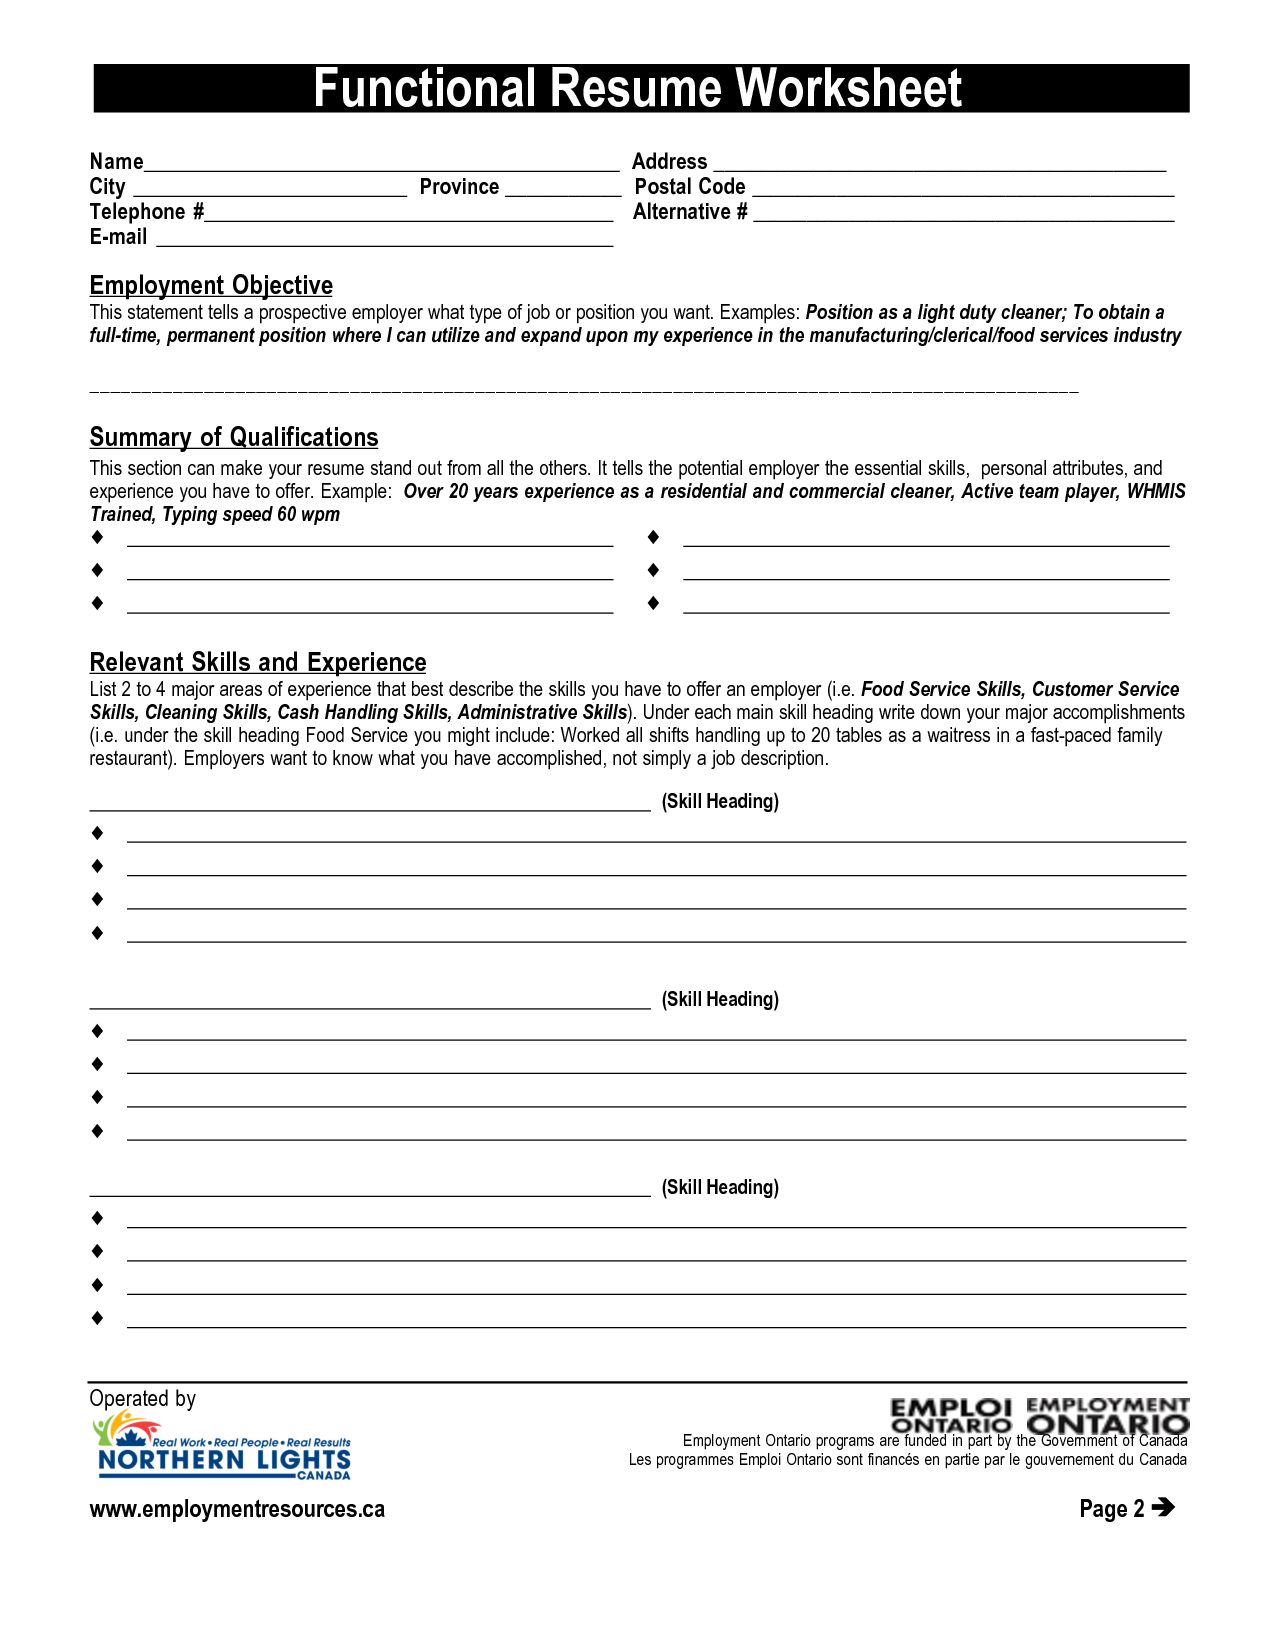 Resume Worksheet Printable